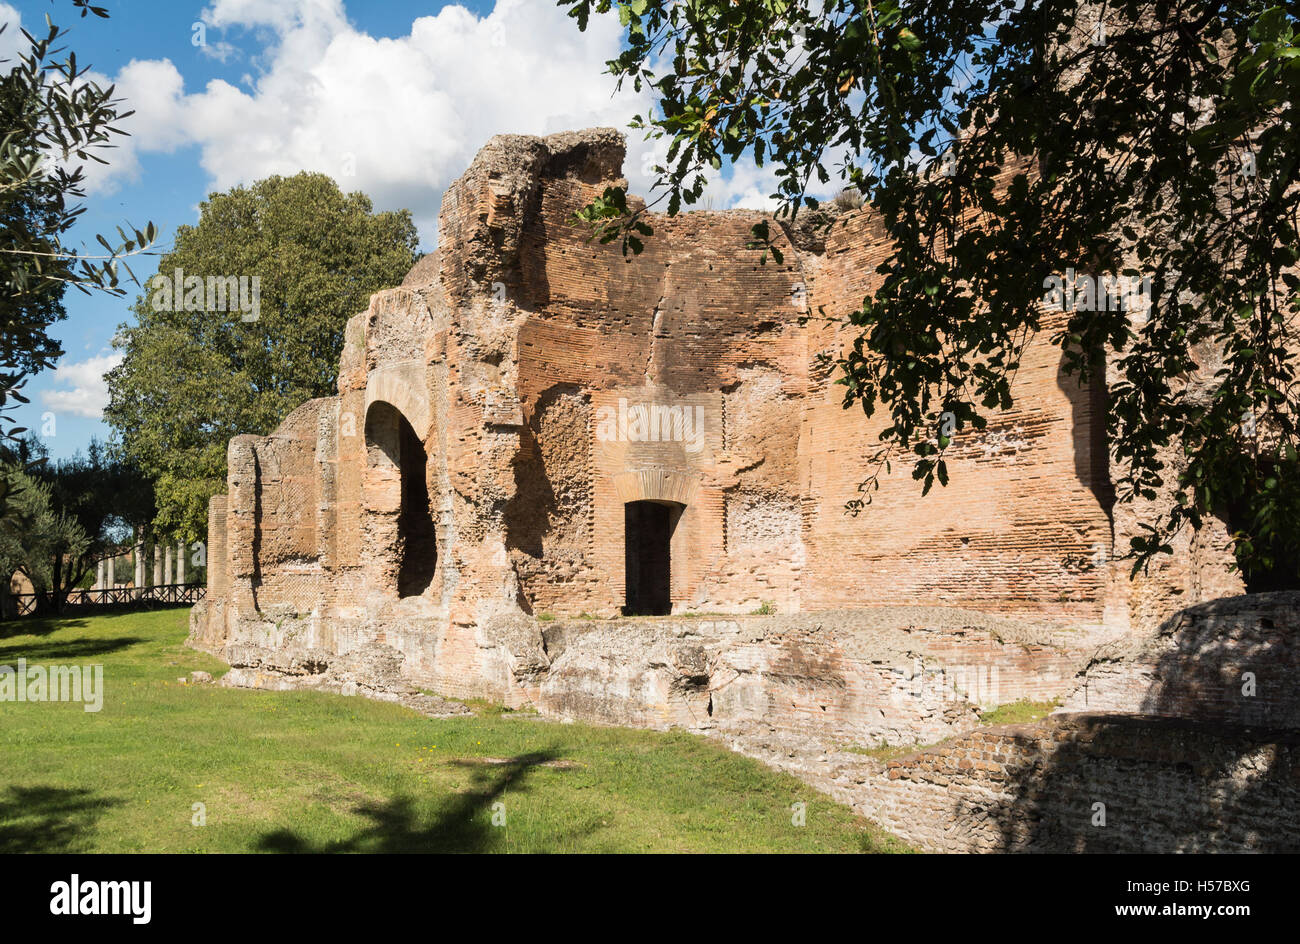 Tivoli Rome Weather Piccole Terme Villa Adriana Tivoli Italy Stock Photo